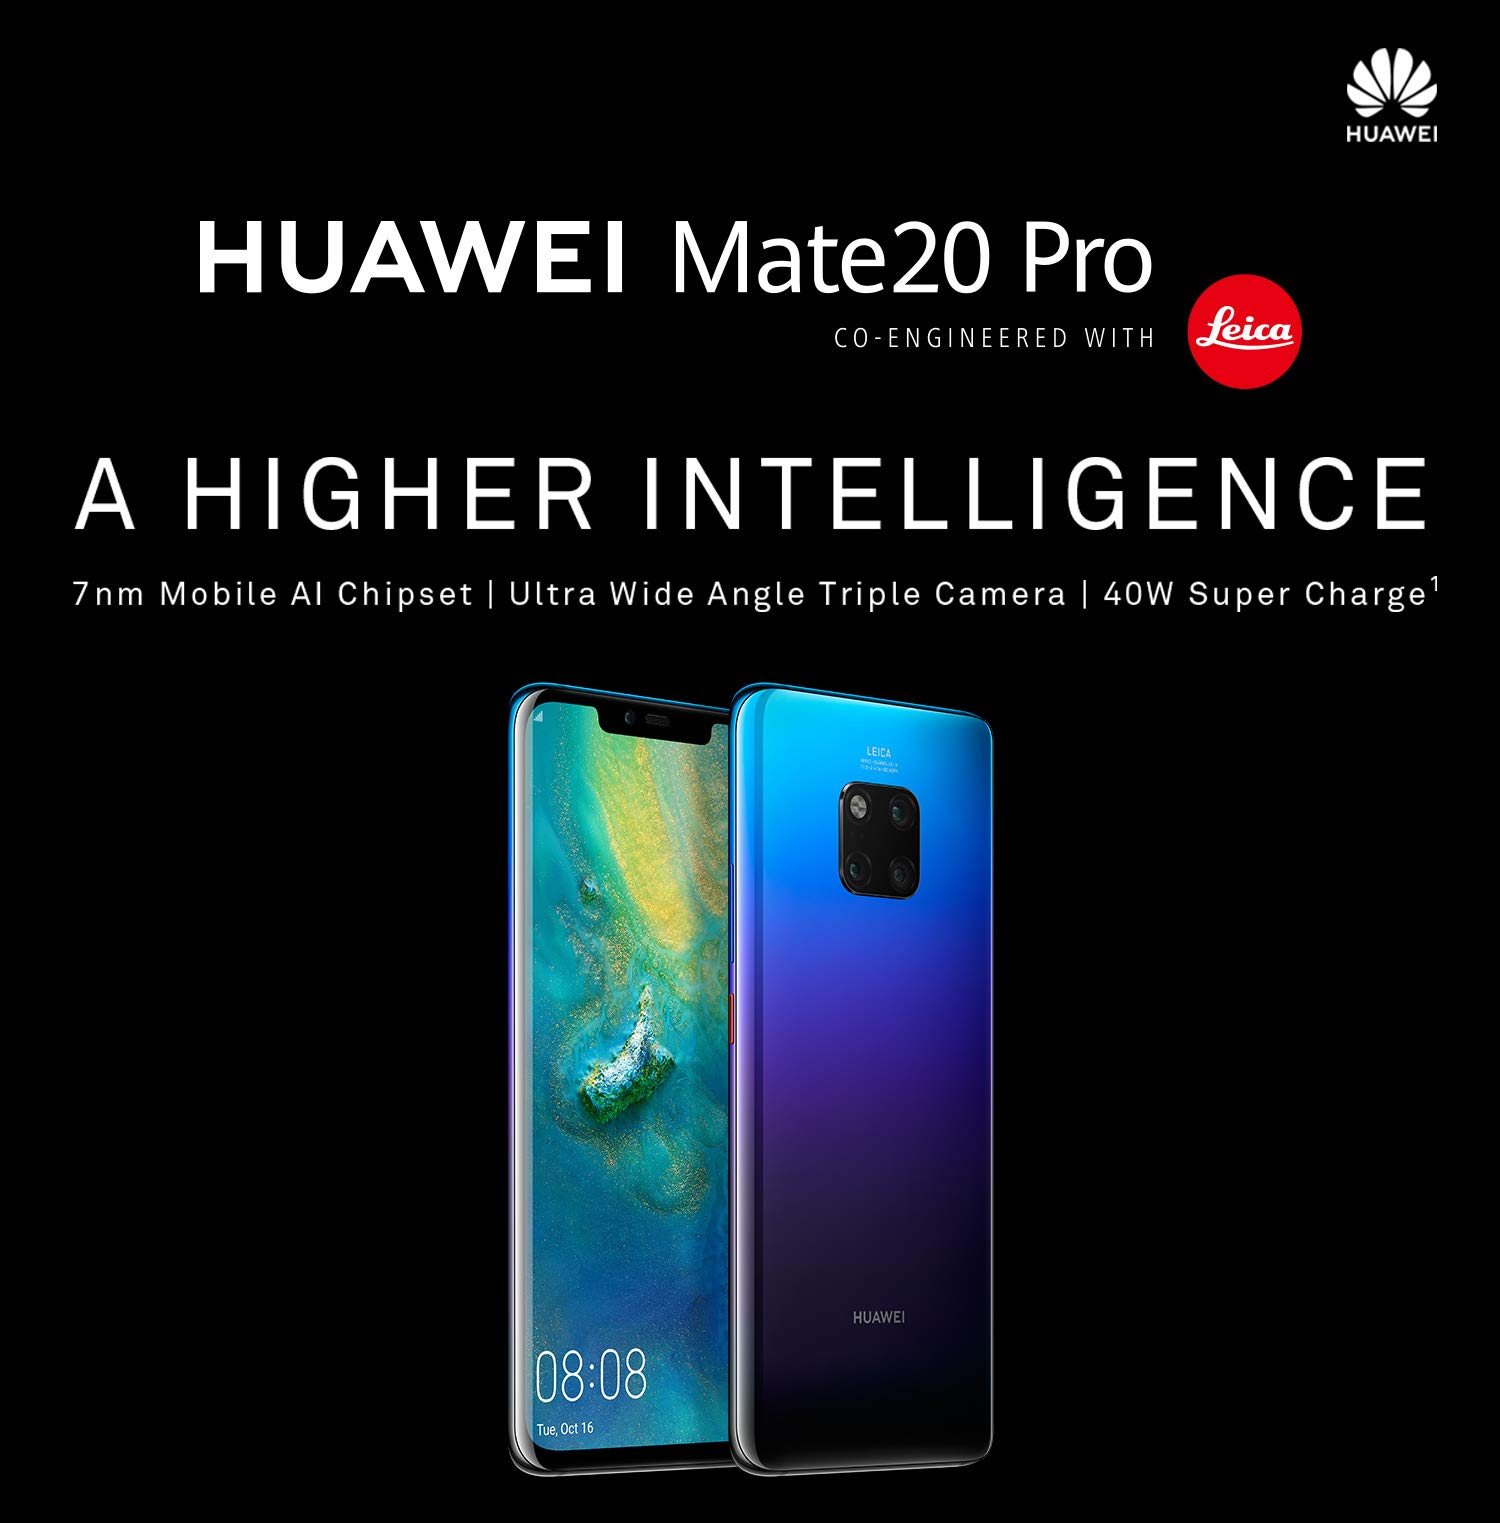 Huawei Mate 20 pro: World's First Smartphone with 7 nm Processor and